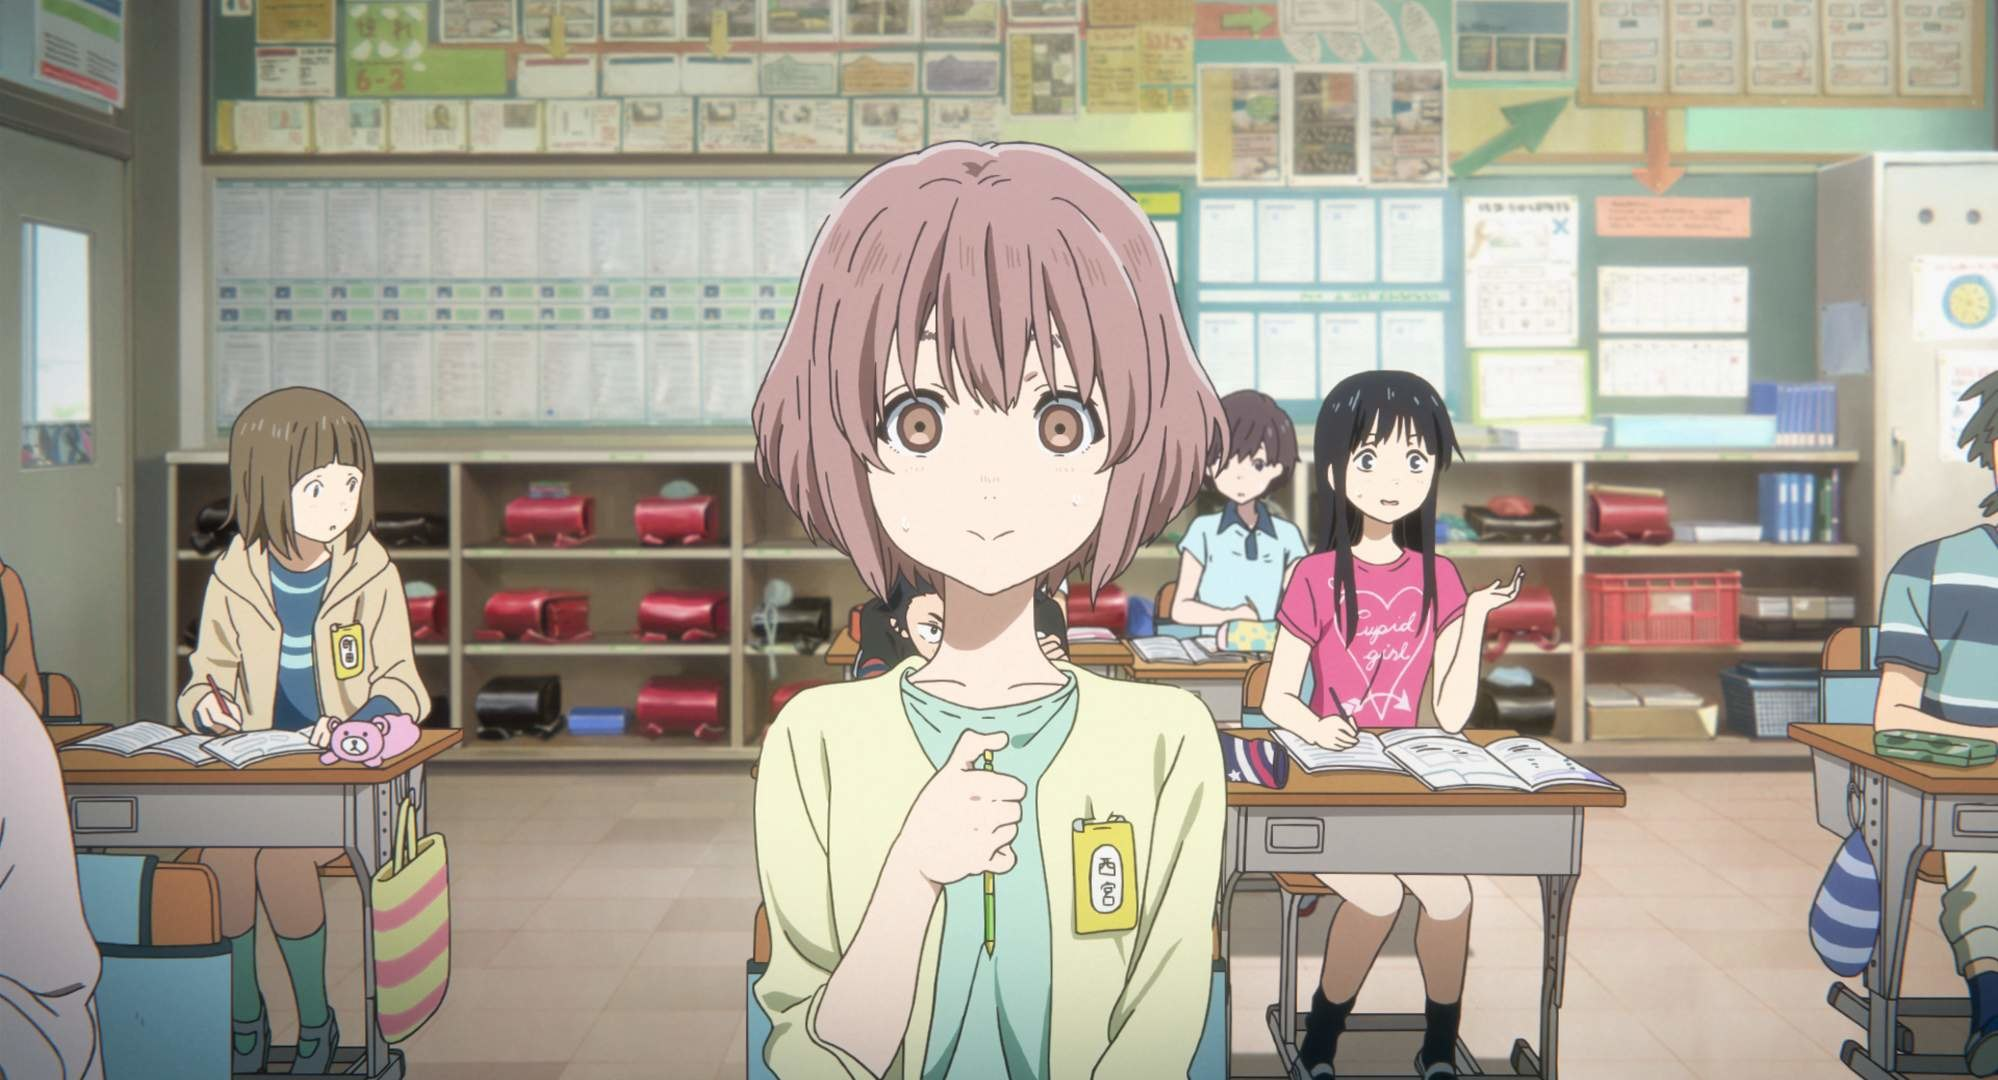 CLIP: Naoko Yamada's 'A Silent Voice' Now Available on Blu